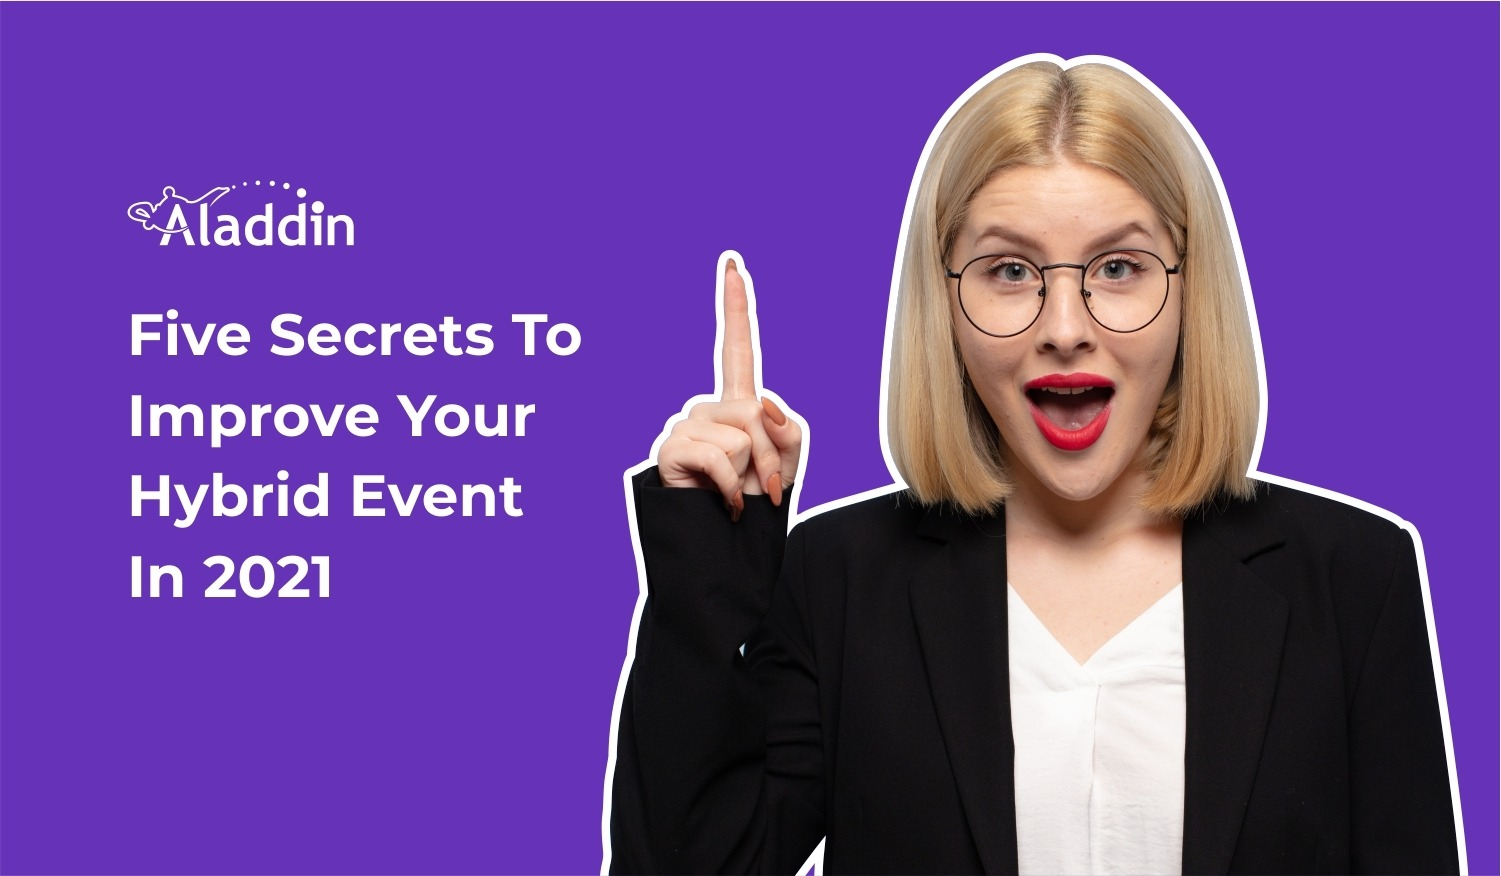 Five Secrets To Improve Your Hybrid Event In 2021